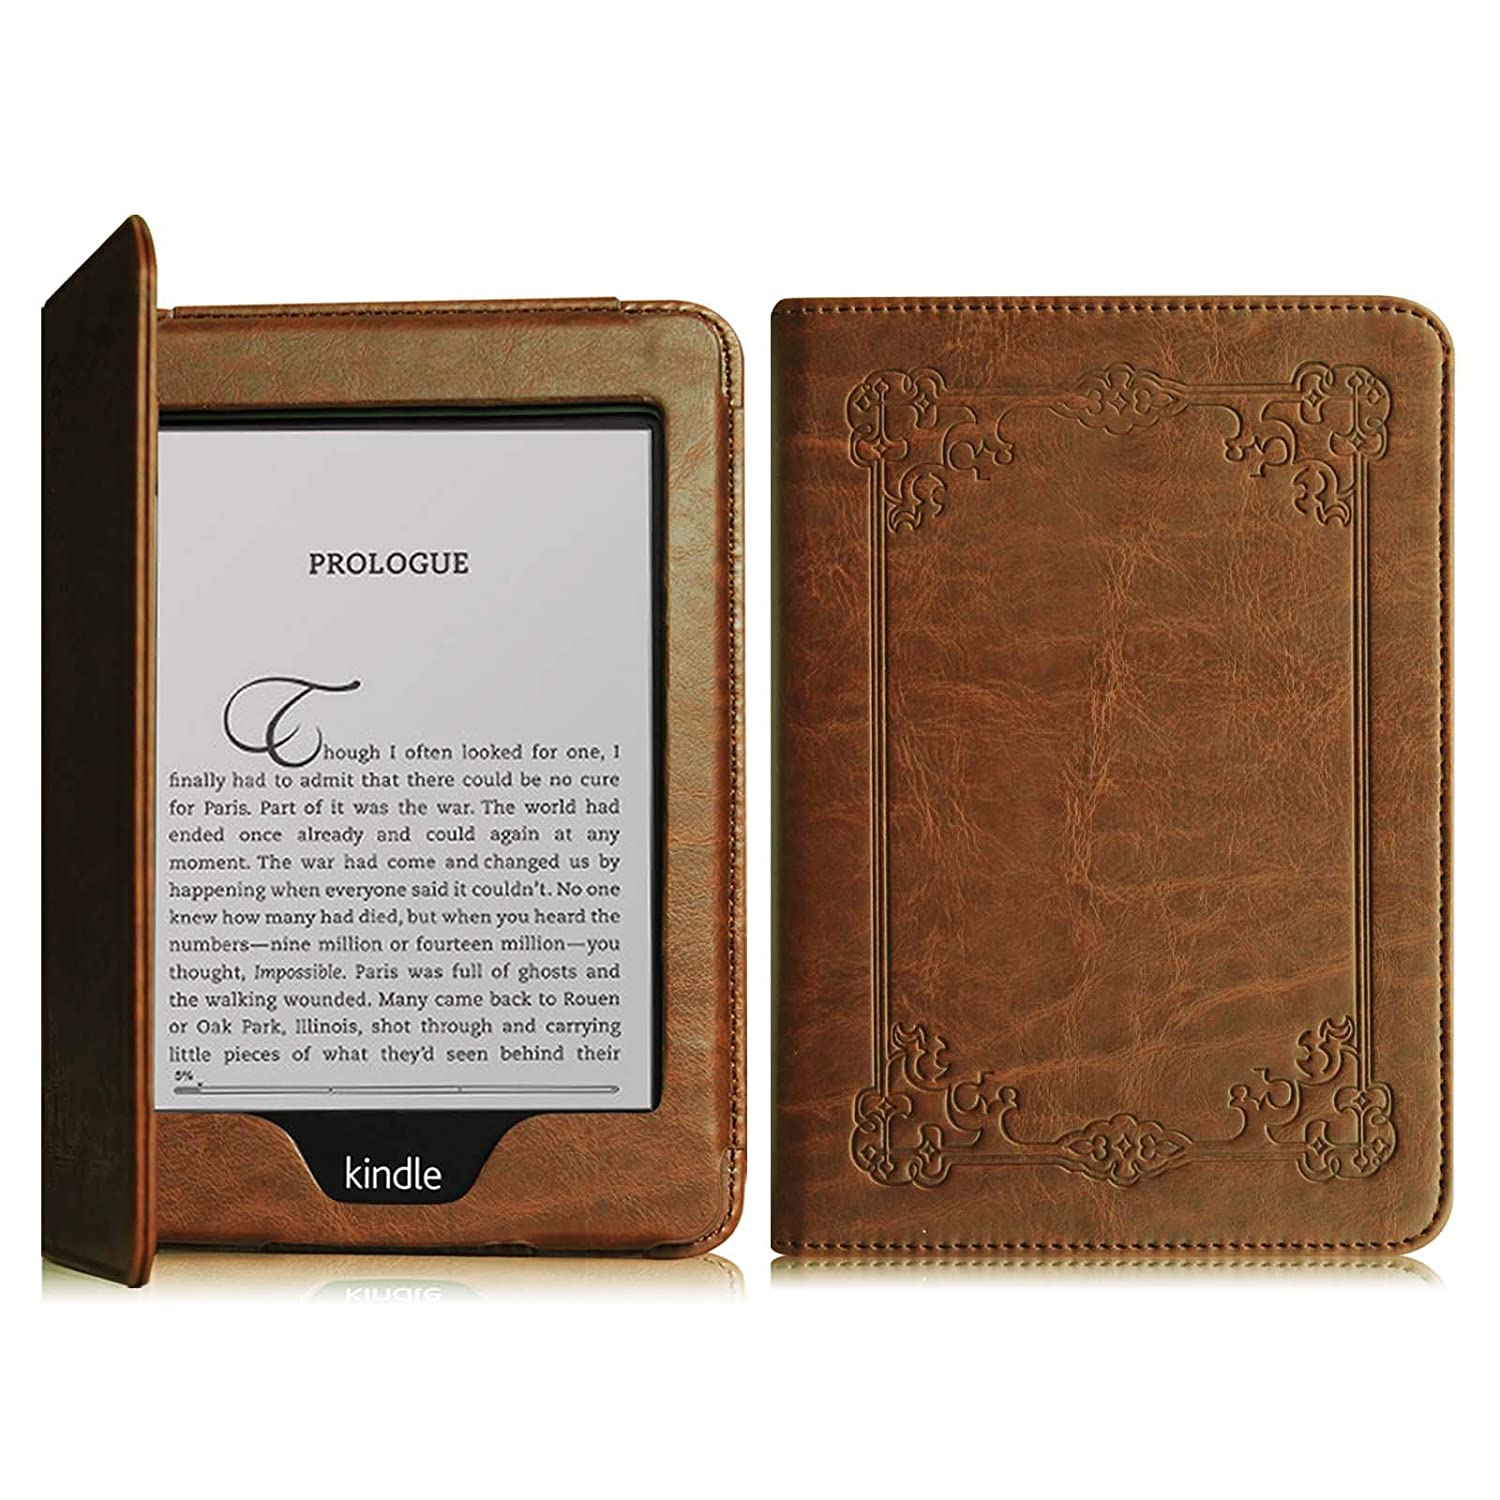 Amazon co uk: Kindle Paperwhite Covers: Amazon Devices & Accessories